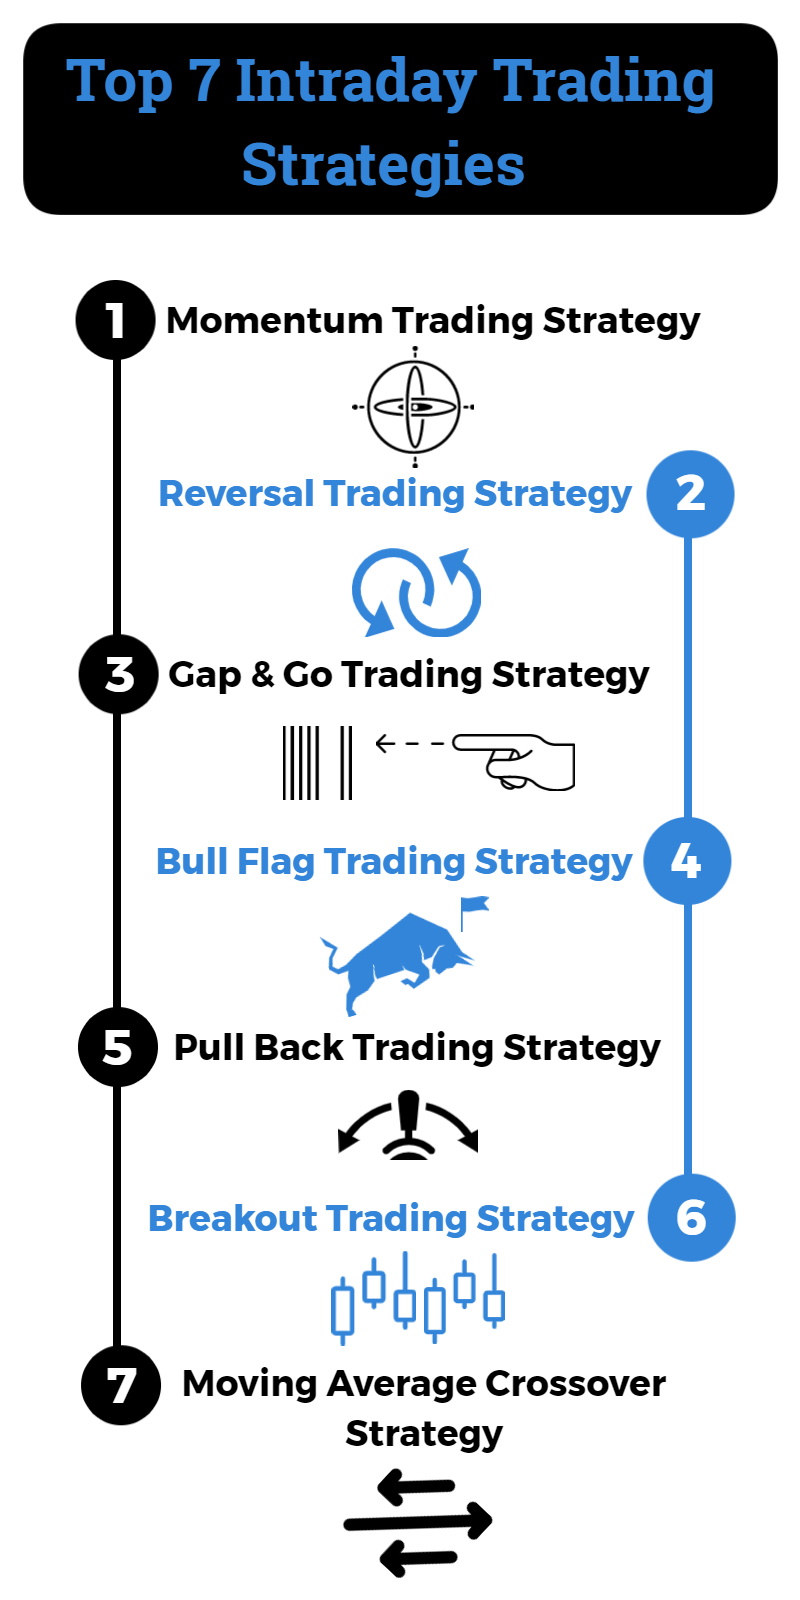 Intraday Trading Strategy Infographic